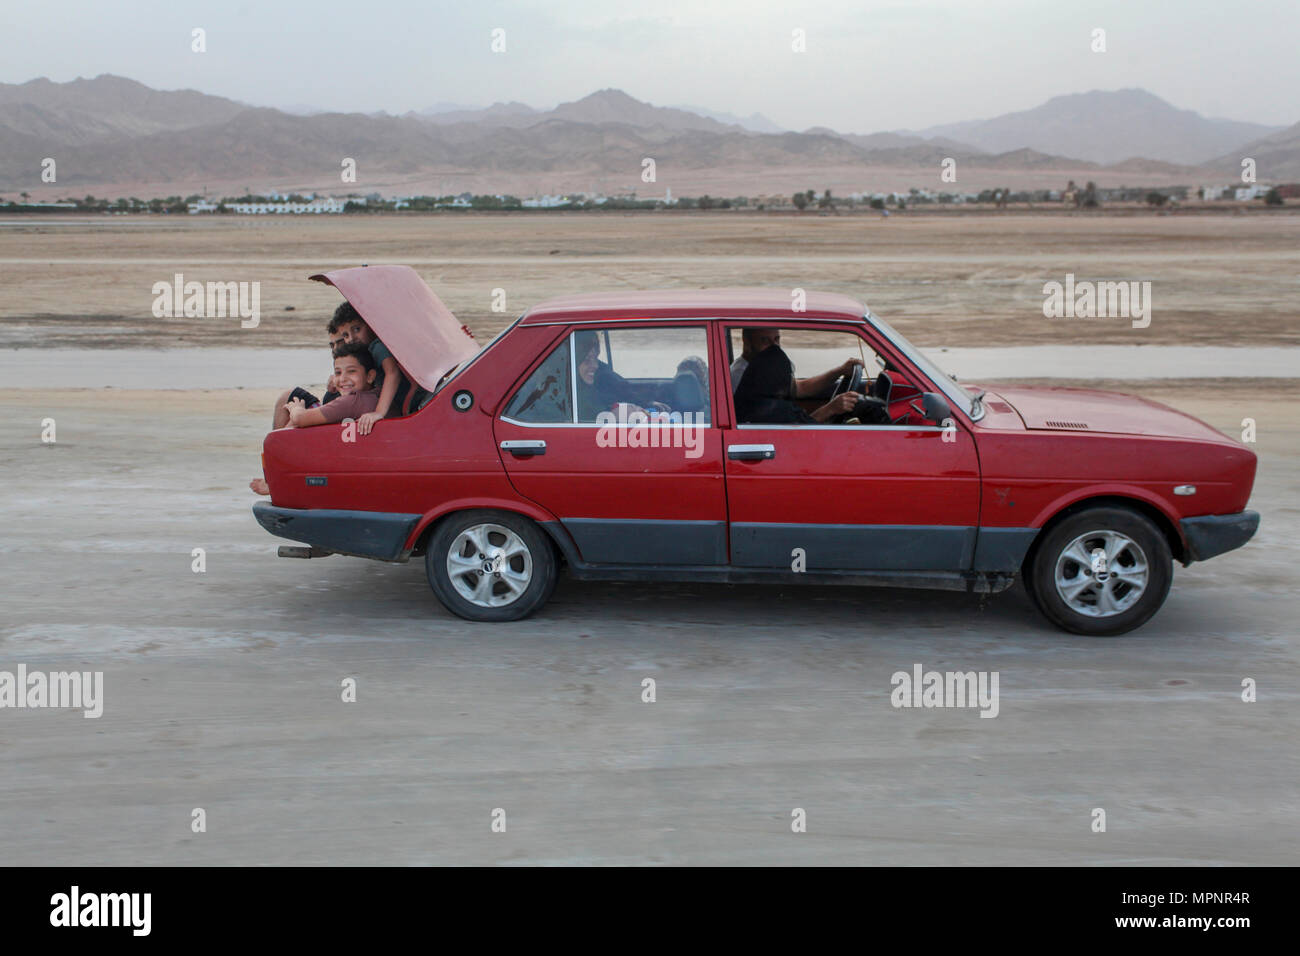 Local transport. A full car with children in the boot. Photographed in Dahab, Sinai, Egypt - Stock Image